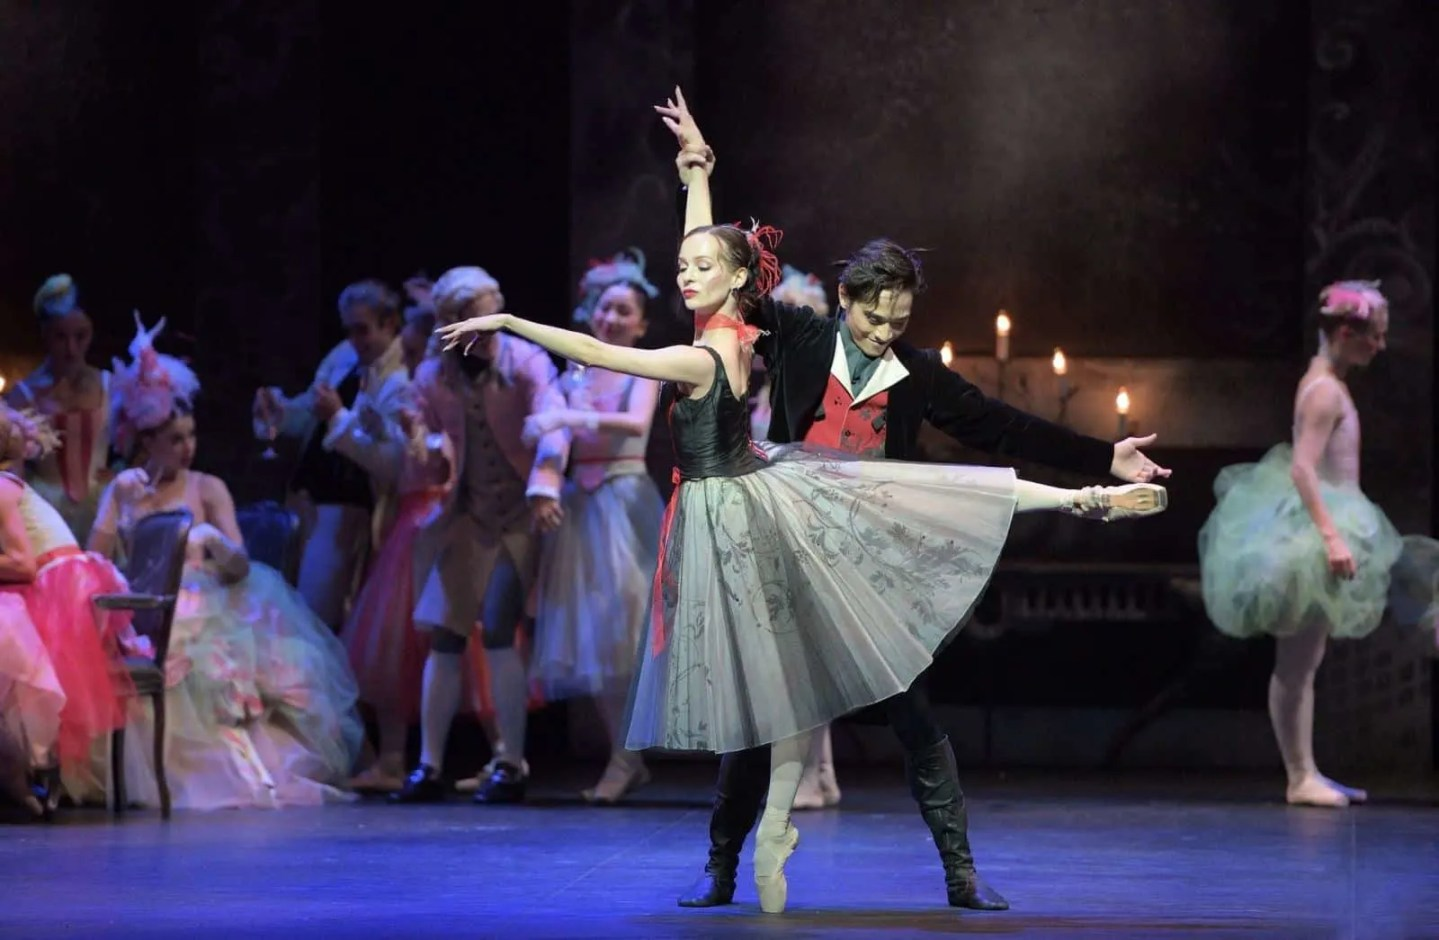 Katja-Khaniukova-and-Jeffrey-Cirio-in-Manon-c-Laurent-Liotardo